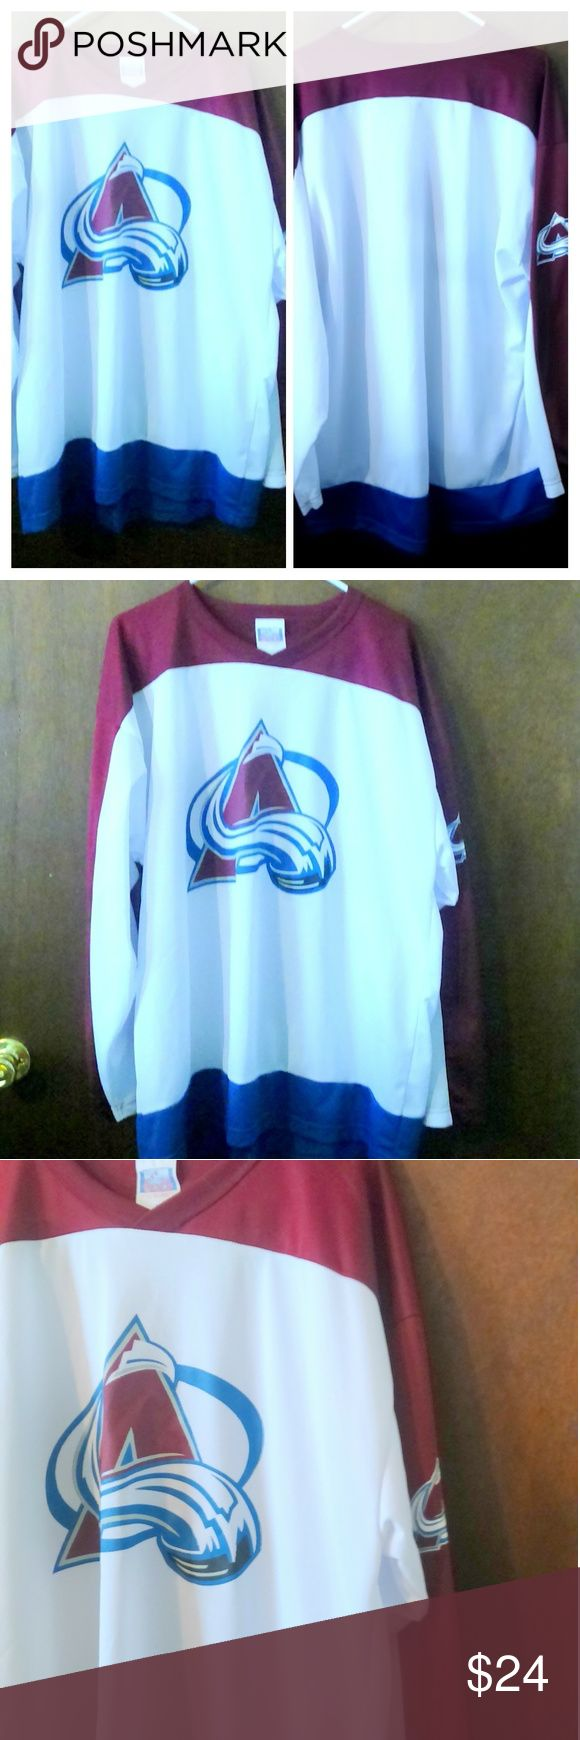 "Off the Bench Colorado Avalanche NHL Hockey Jersey This men's Colorado Avalanche jersey is made by Off the Wall and is a size XL. The jersey is done in a 100% polyester. Measurements are: Chest 54"", length 33"". In good condition with no issues. Off The Bench Shirts"